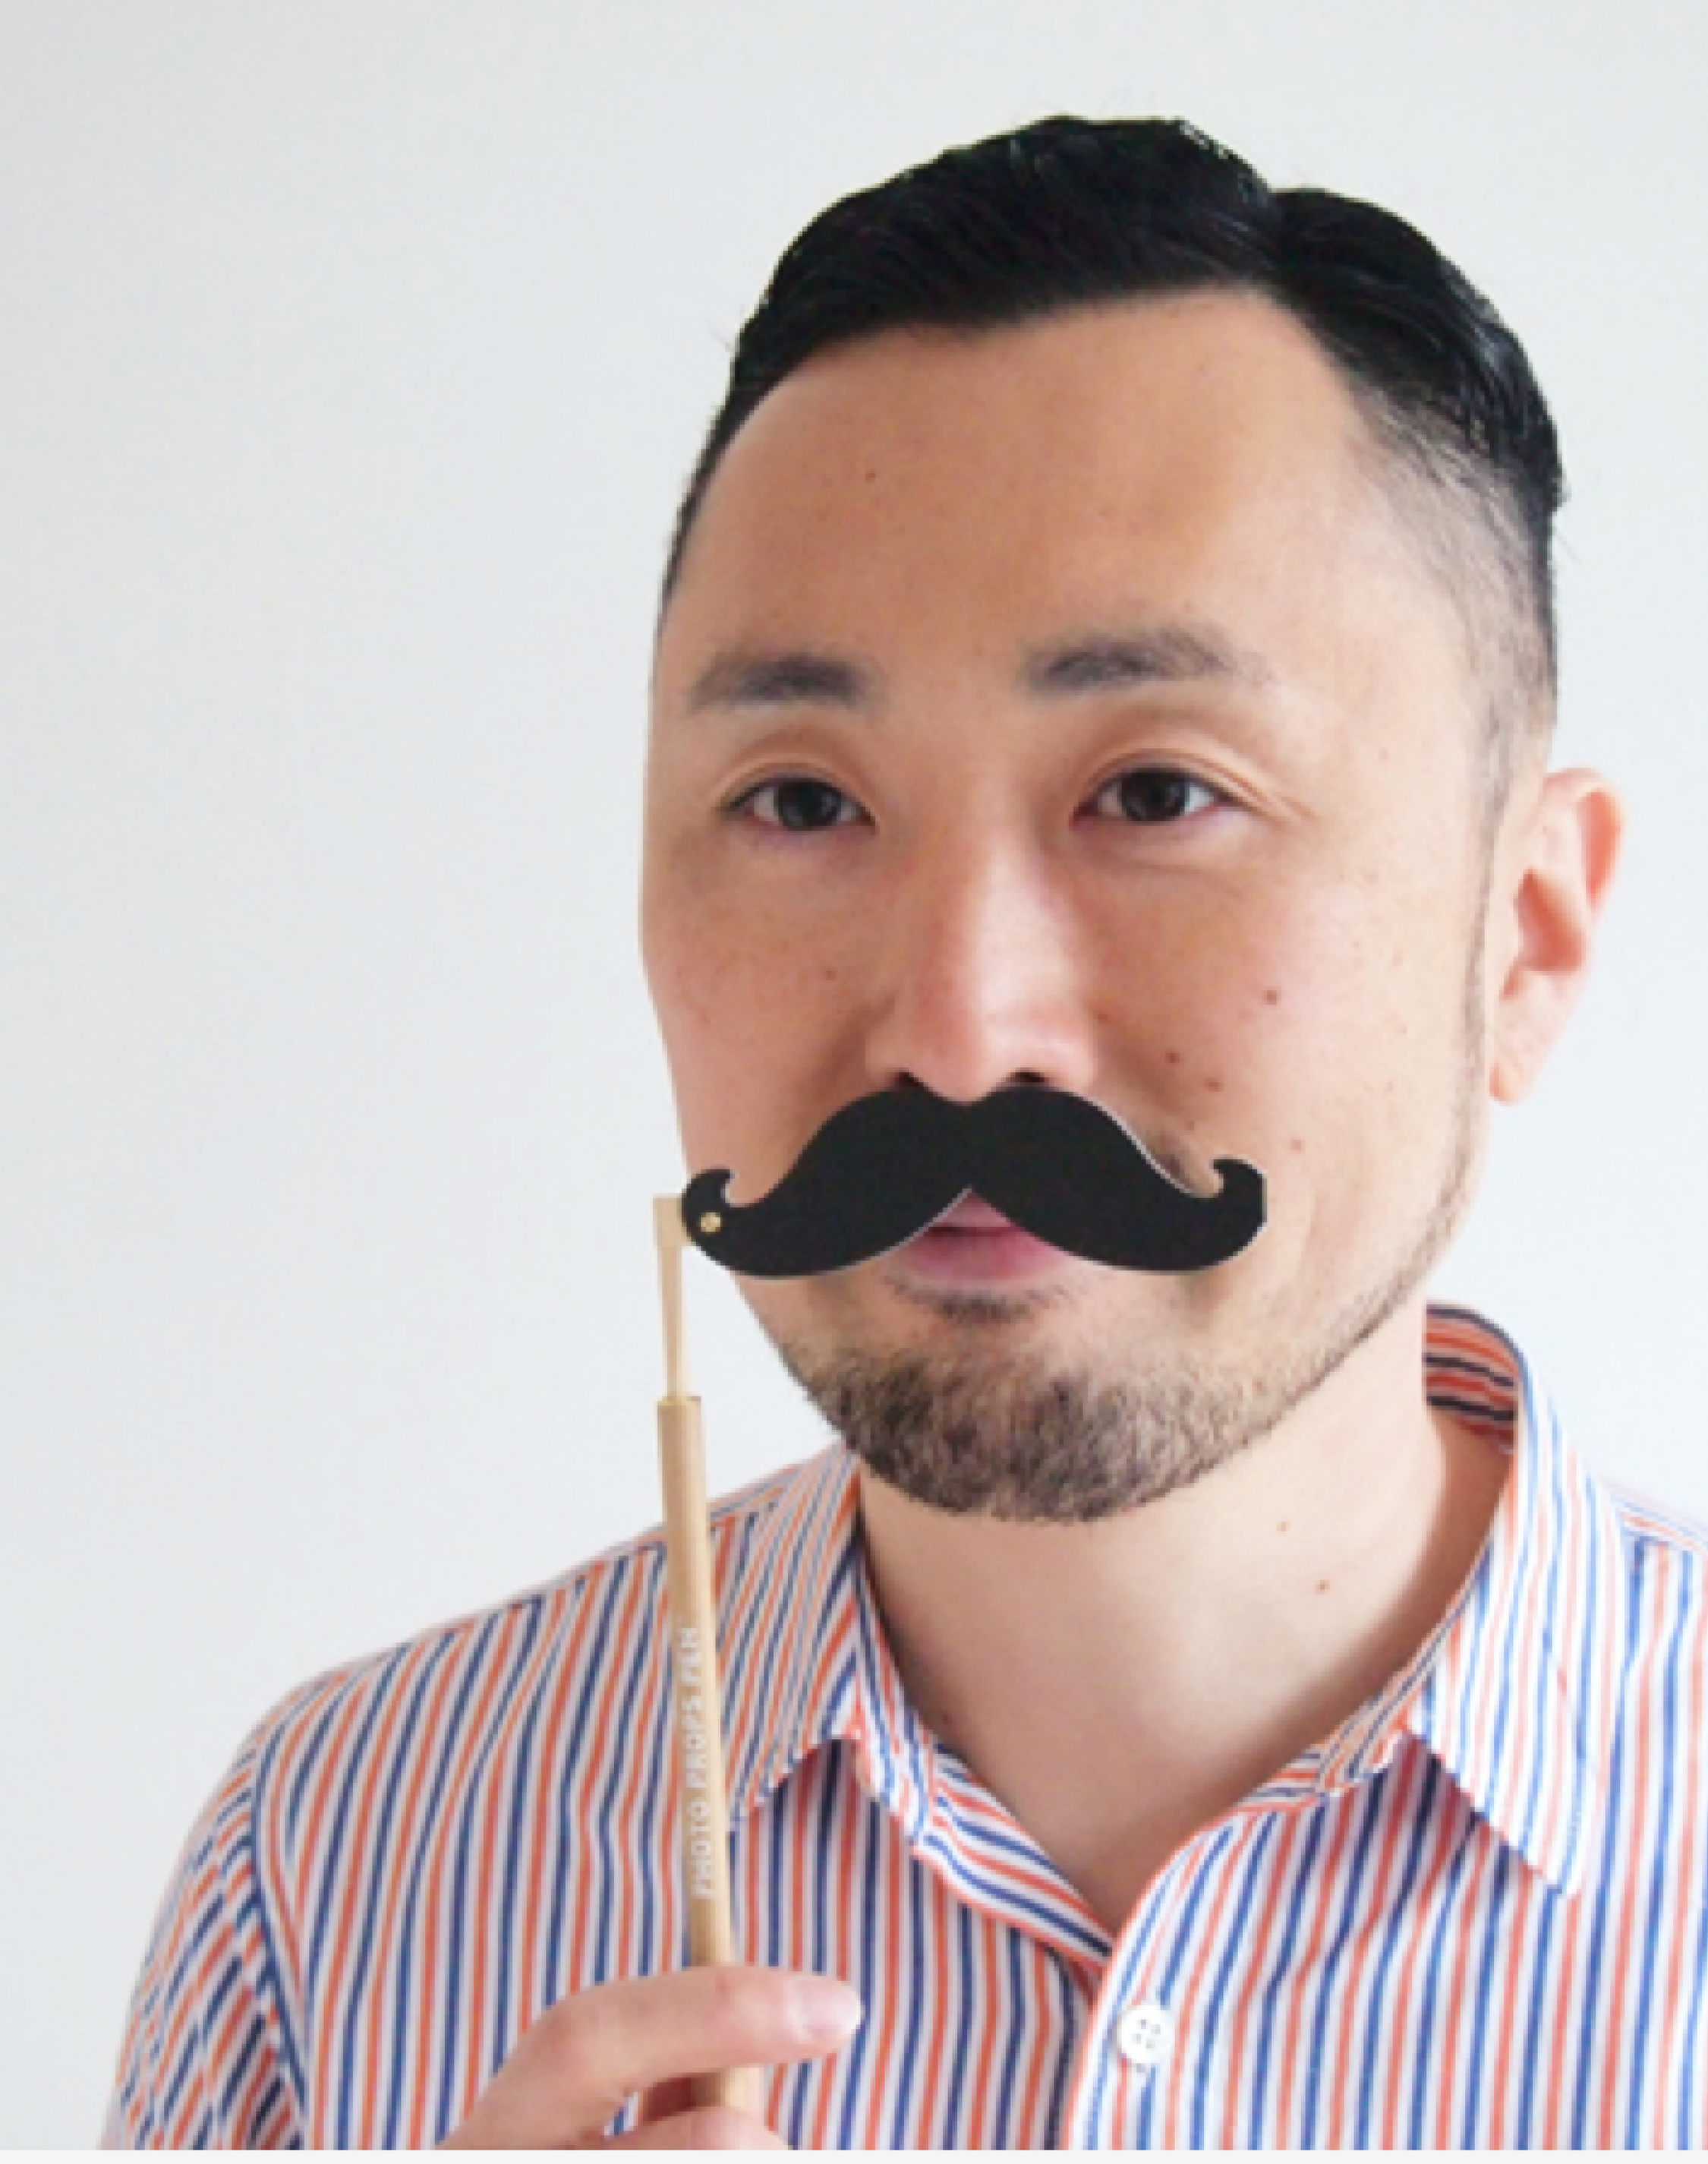 A man is trying a mustache photo props pen